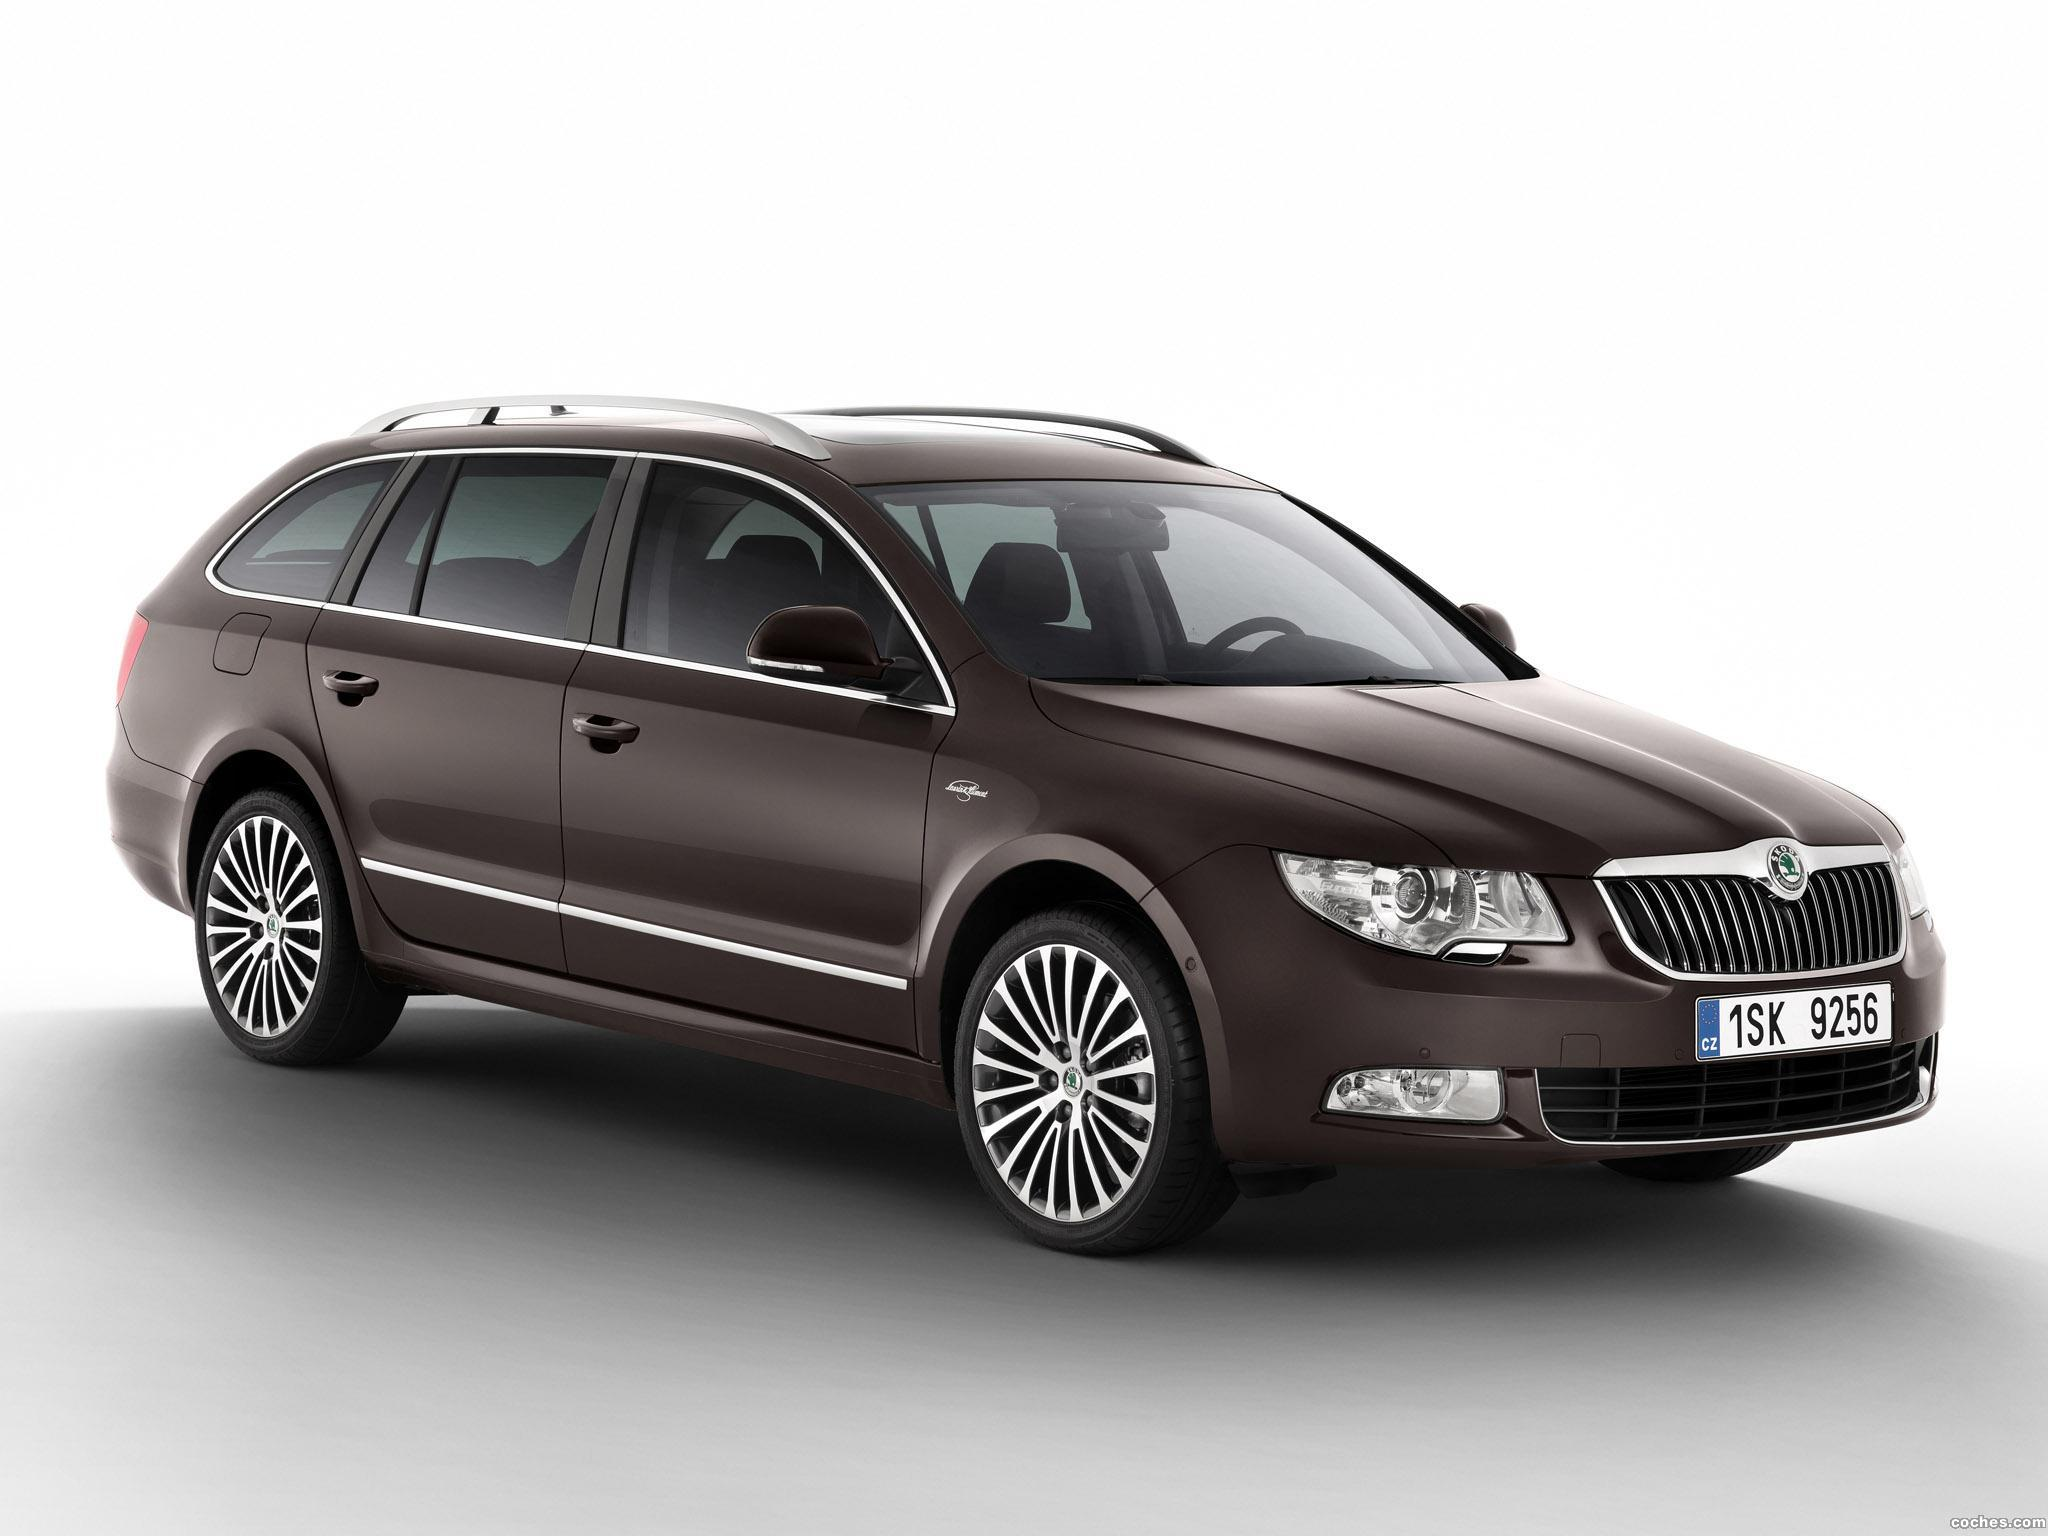 Foto 0 de Skoda Superb Combi Laurin & Klement 2011